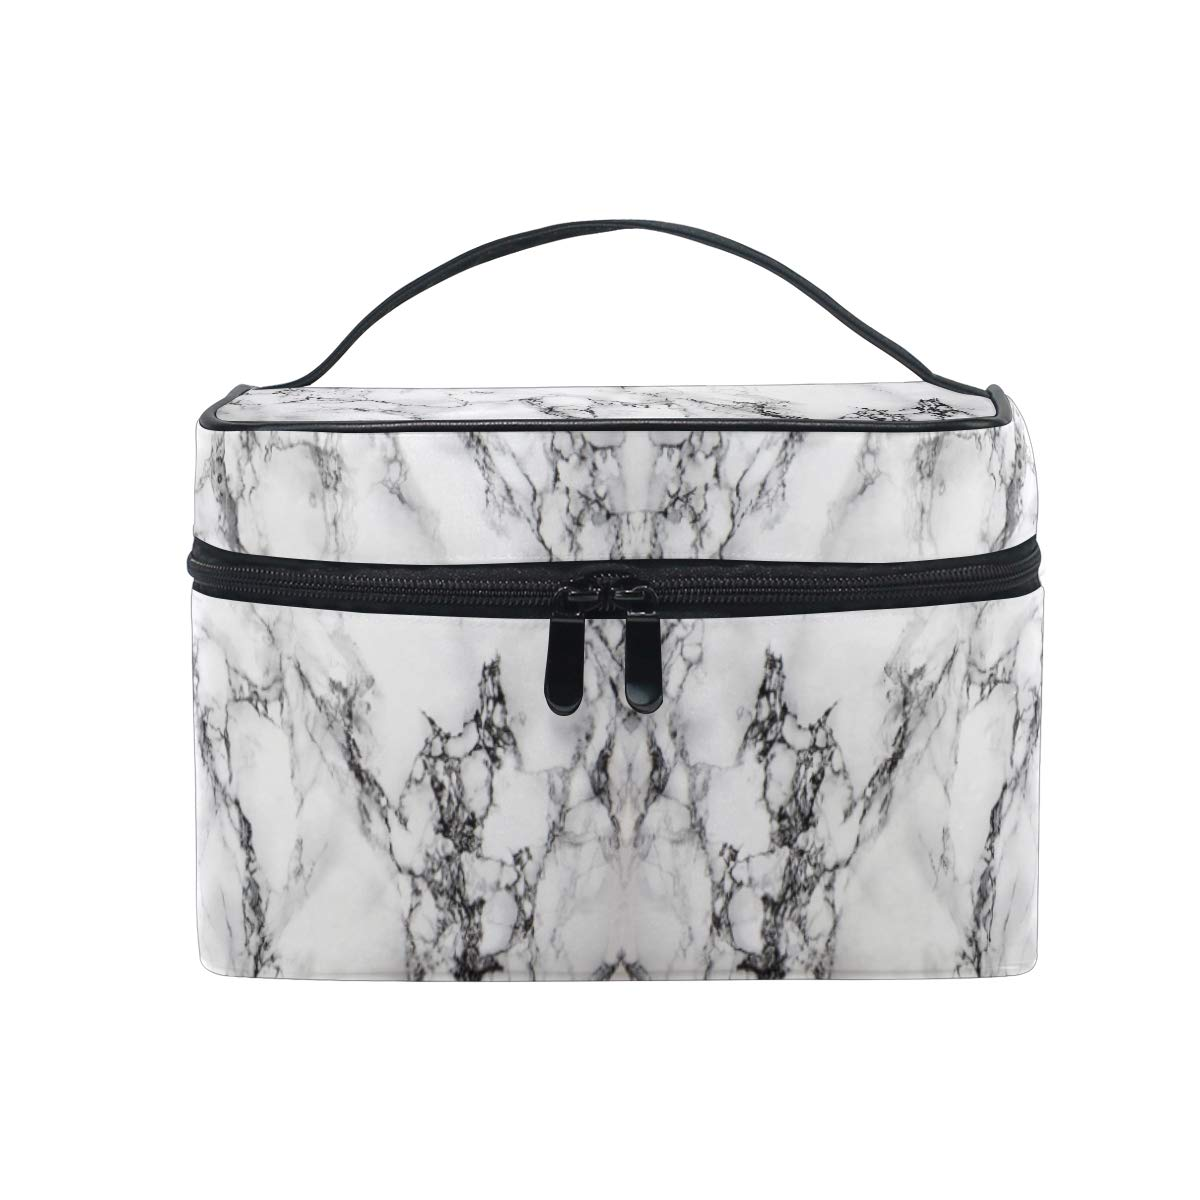 ZOEO Makeup Train Case White Marble Stone Korean Carrying Portable Zip Travel Cosmetic Brush Bag Organizer Large for Teen Girls Women